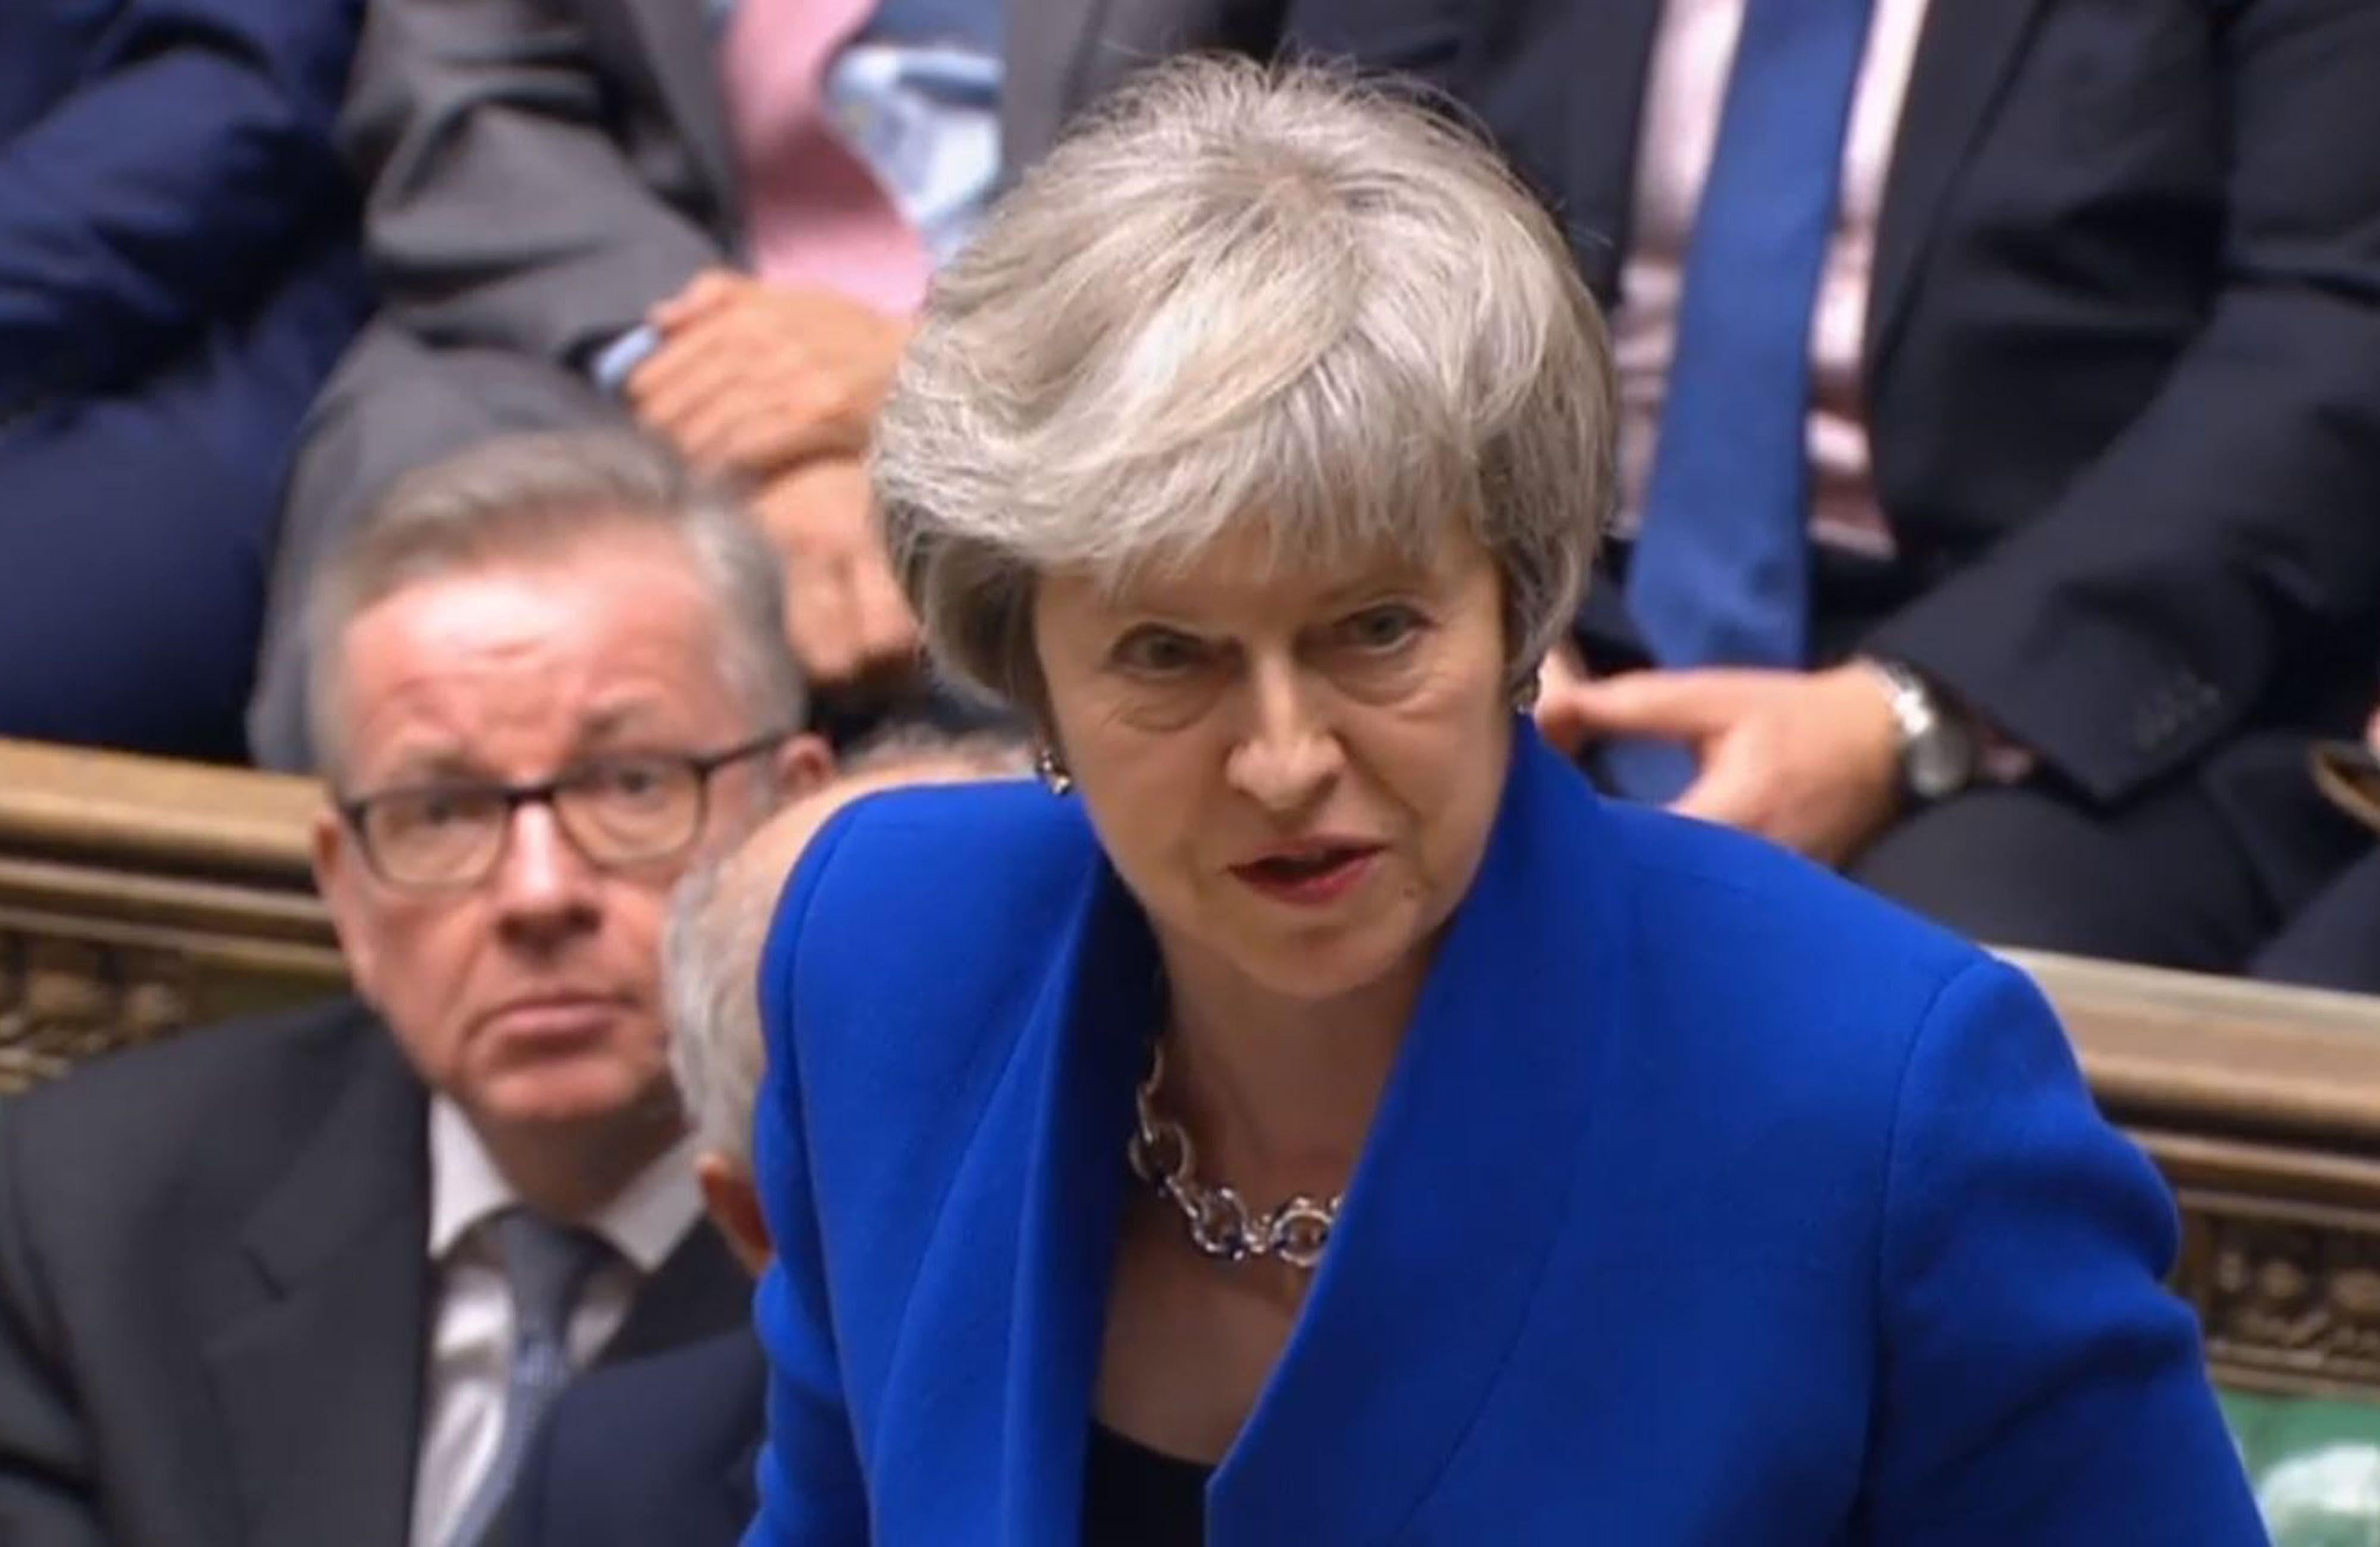 Theresa May Survives No-Confidence Vote In Her